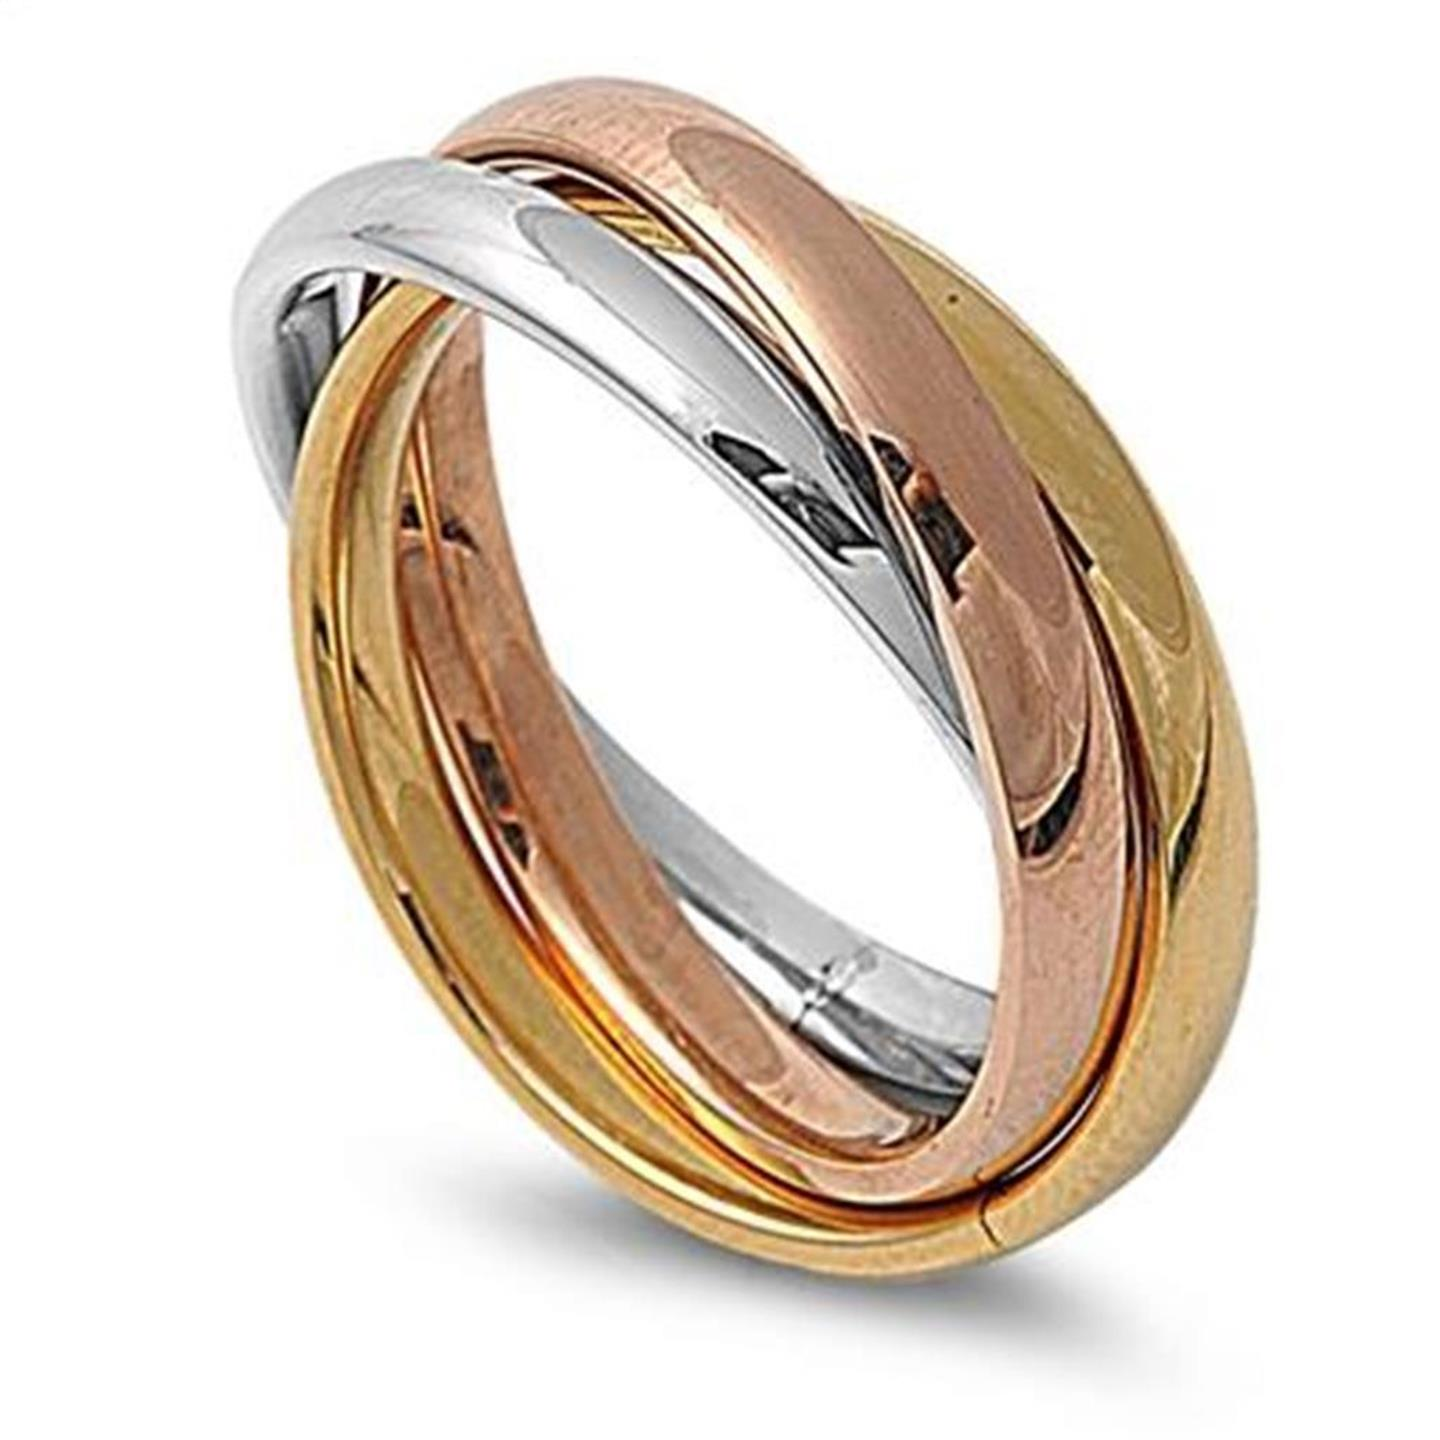 silver gold stainless steel russian wedding ring 3 band